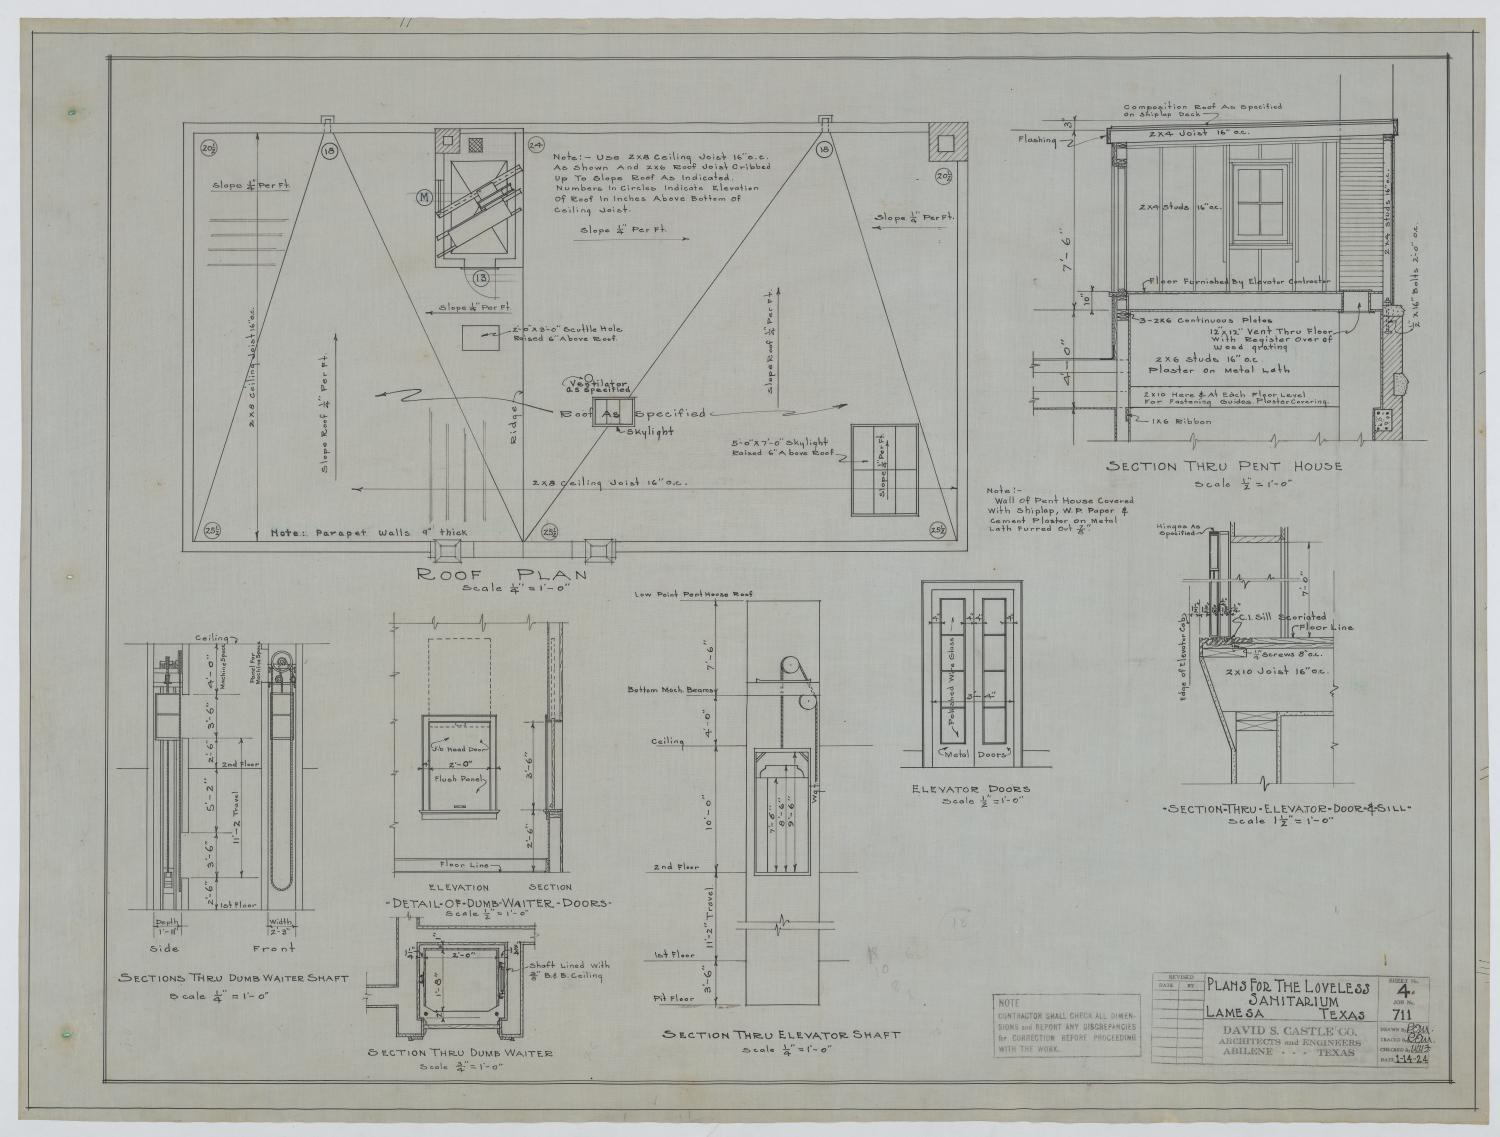 Sanitarium Building, Lamesa, Texas: Roof Plan                                                                                                      [Sequence #]: 1 of 2